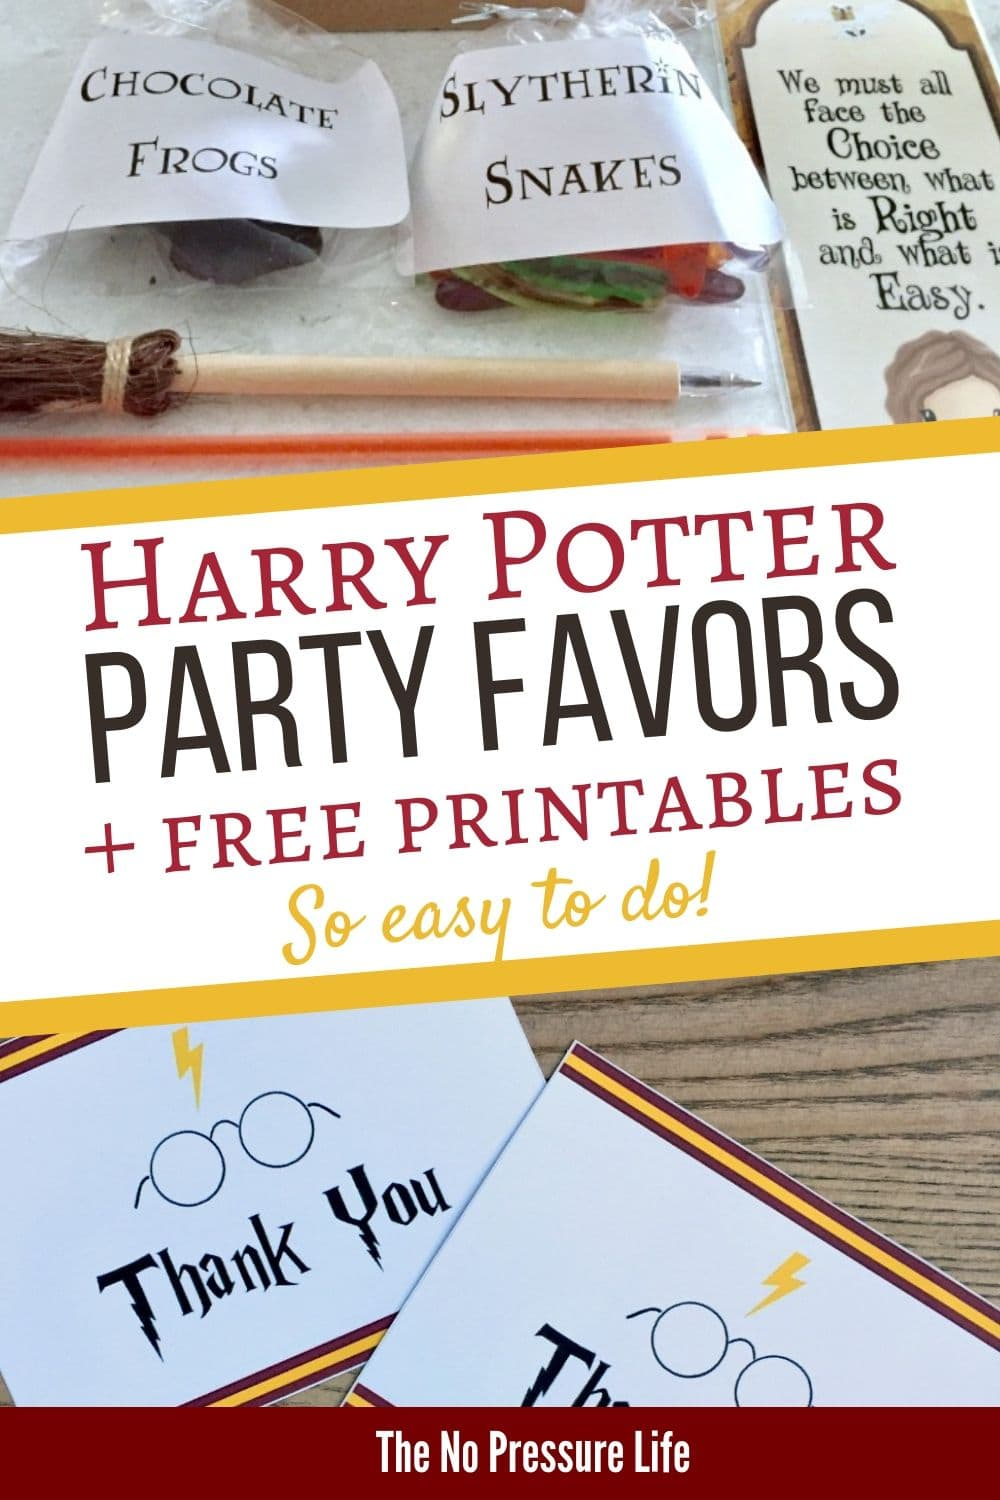 Harry Potter Party Ideas for Goodie Bags